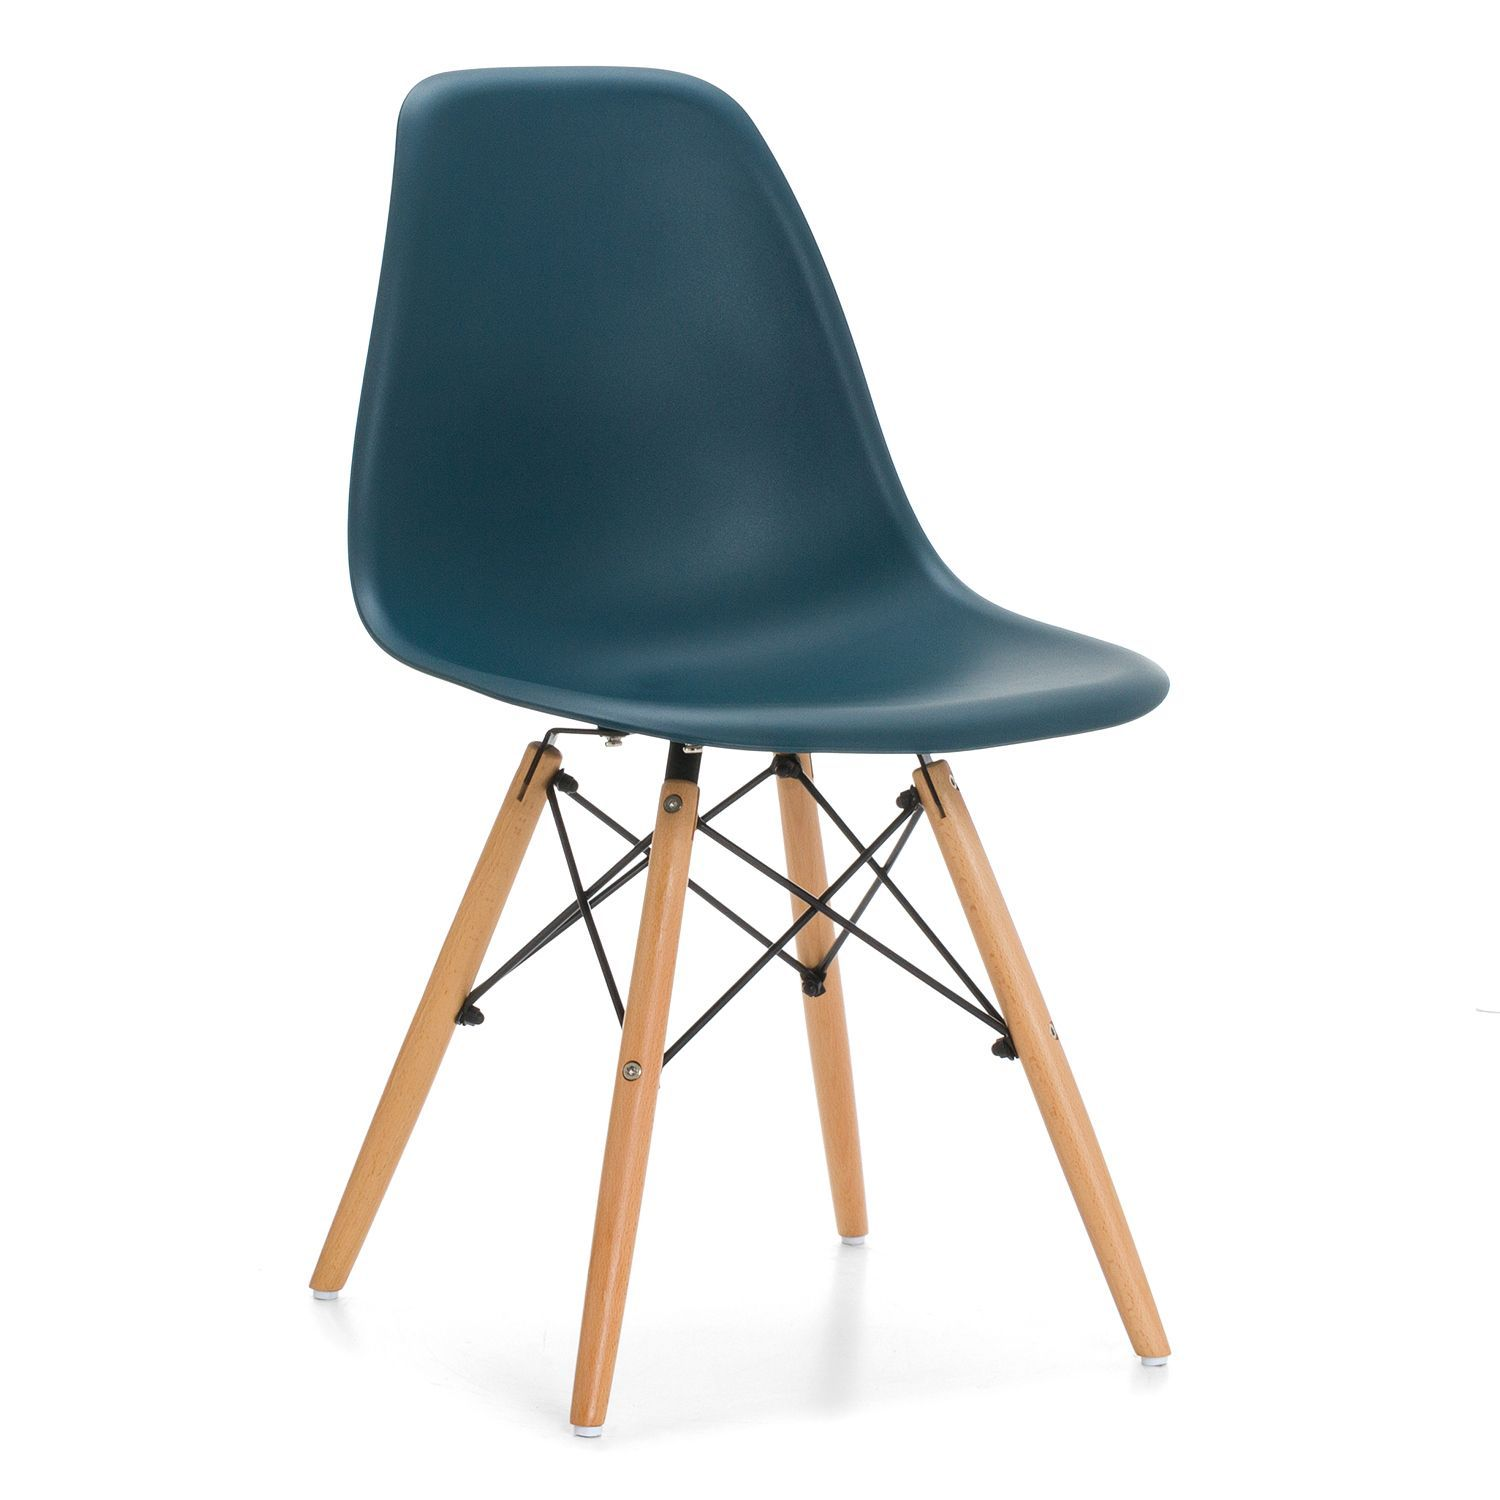 Chaise Design Eames Eames Dining Chair Dsw Simple And Functional Design Shared Boys